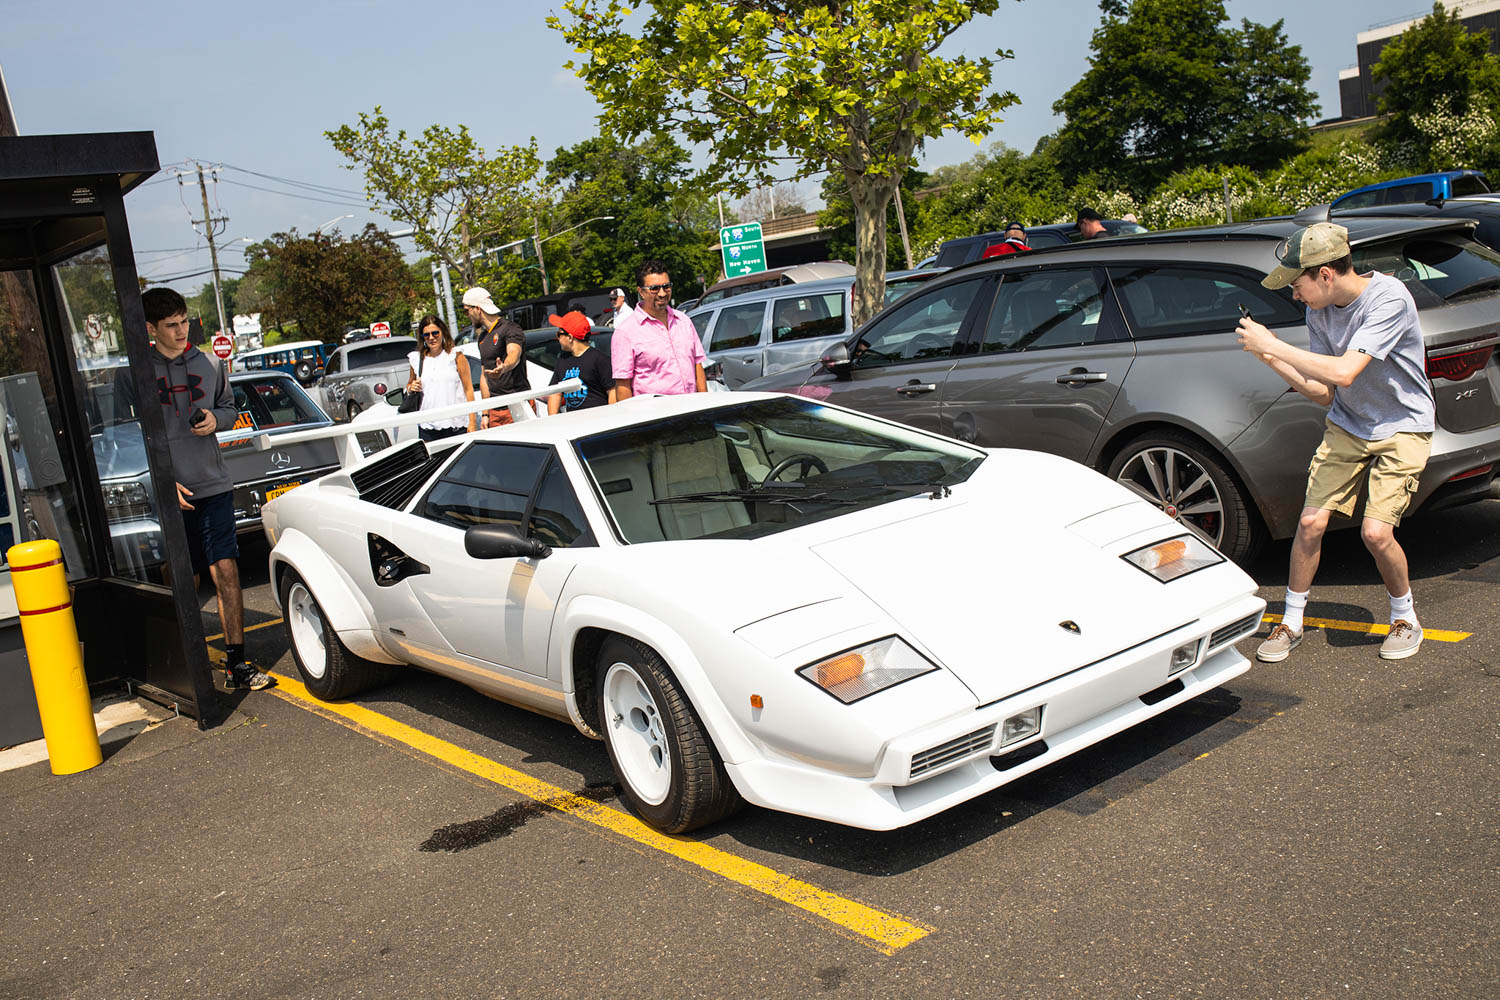 Greenwich Concours parking lot Countach